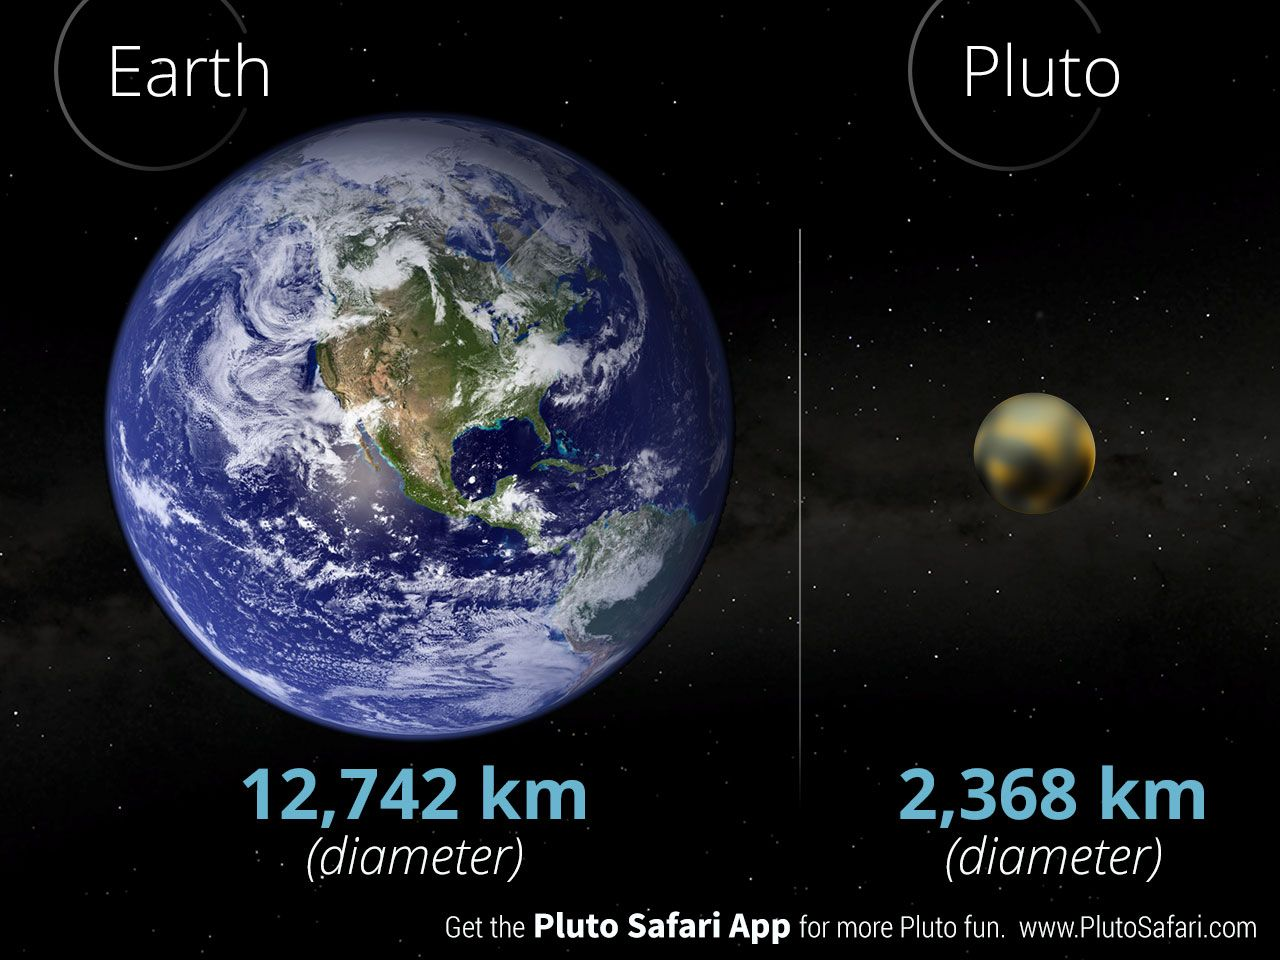 Pluto S Diameter Compared To The Earth